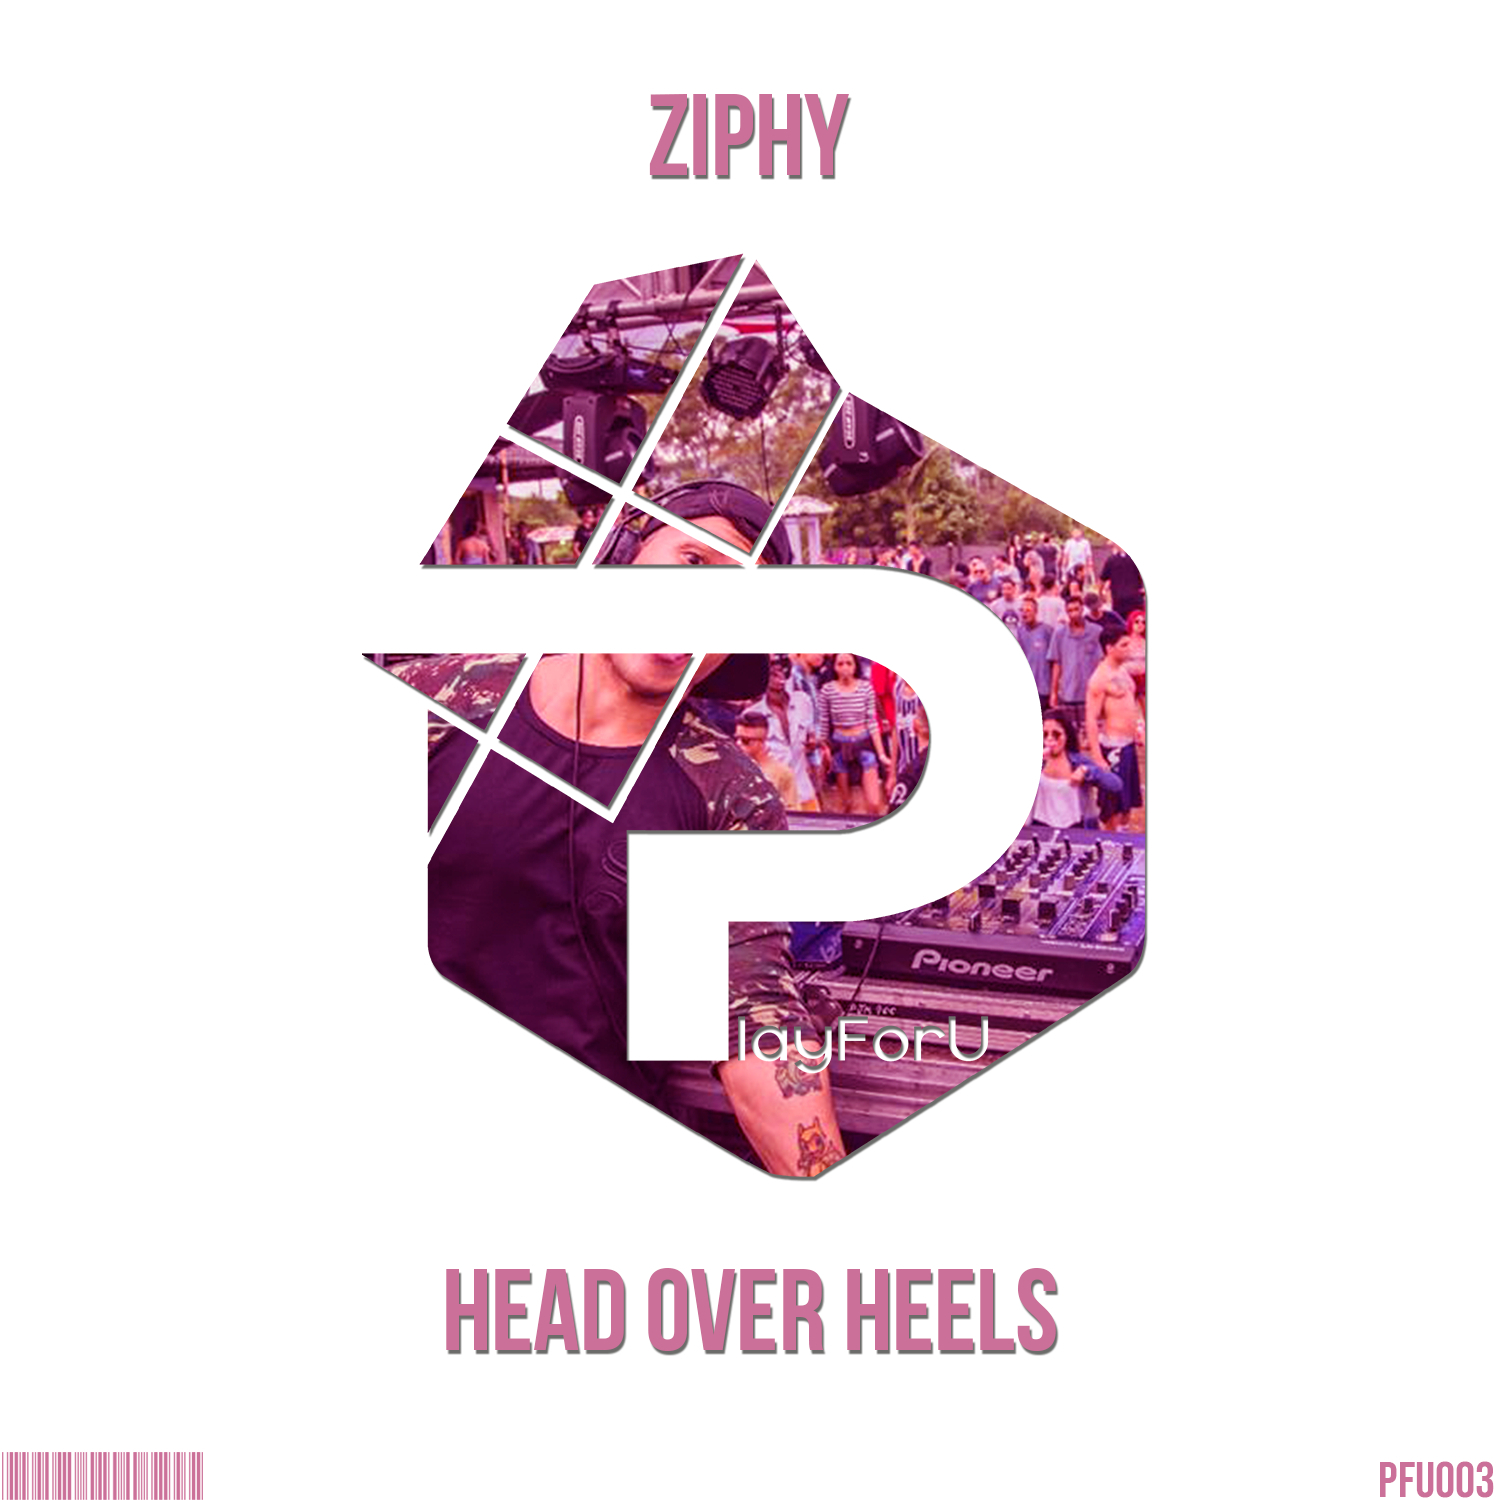 Ziphy - Head Over Heels (Extended Mix)